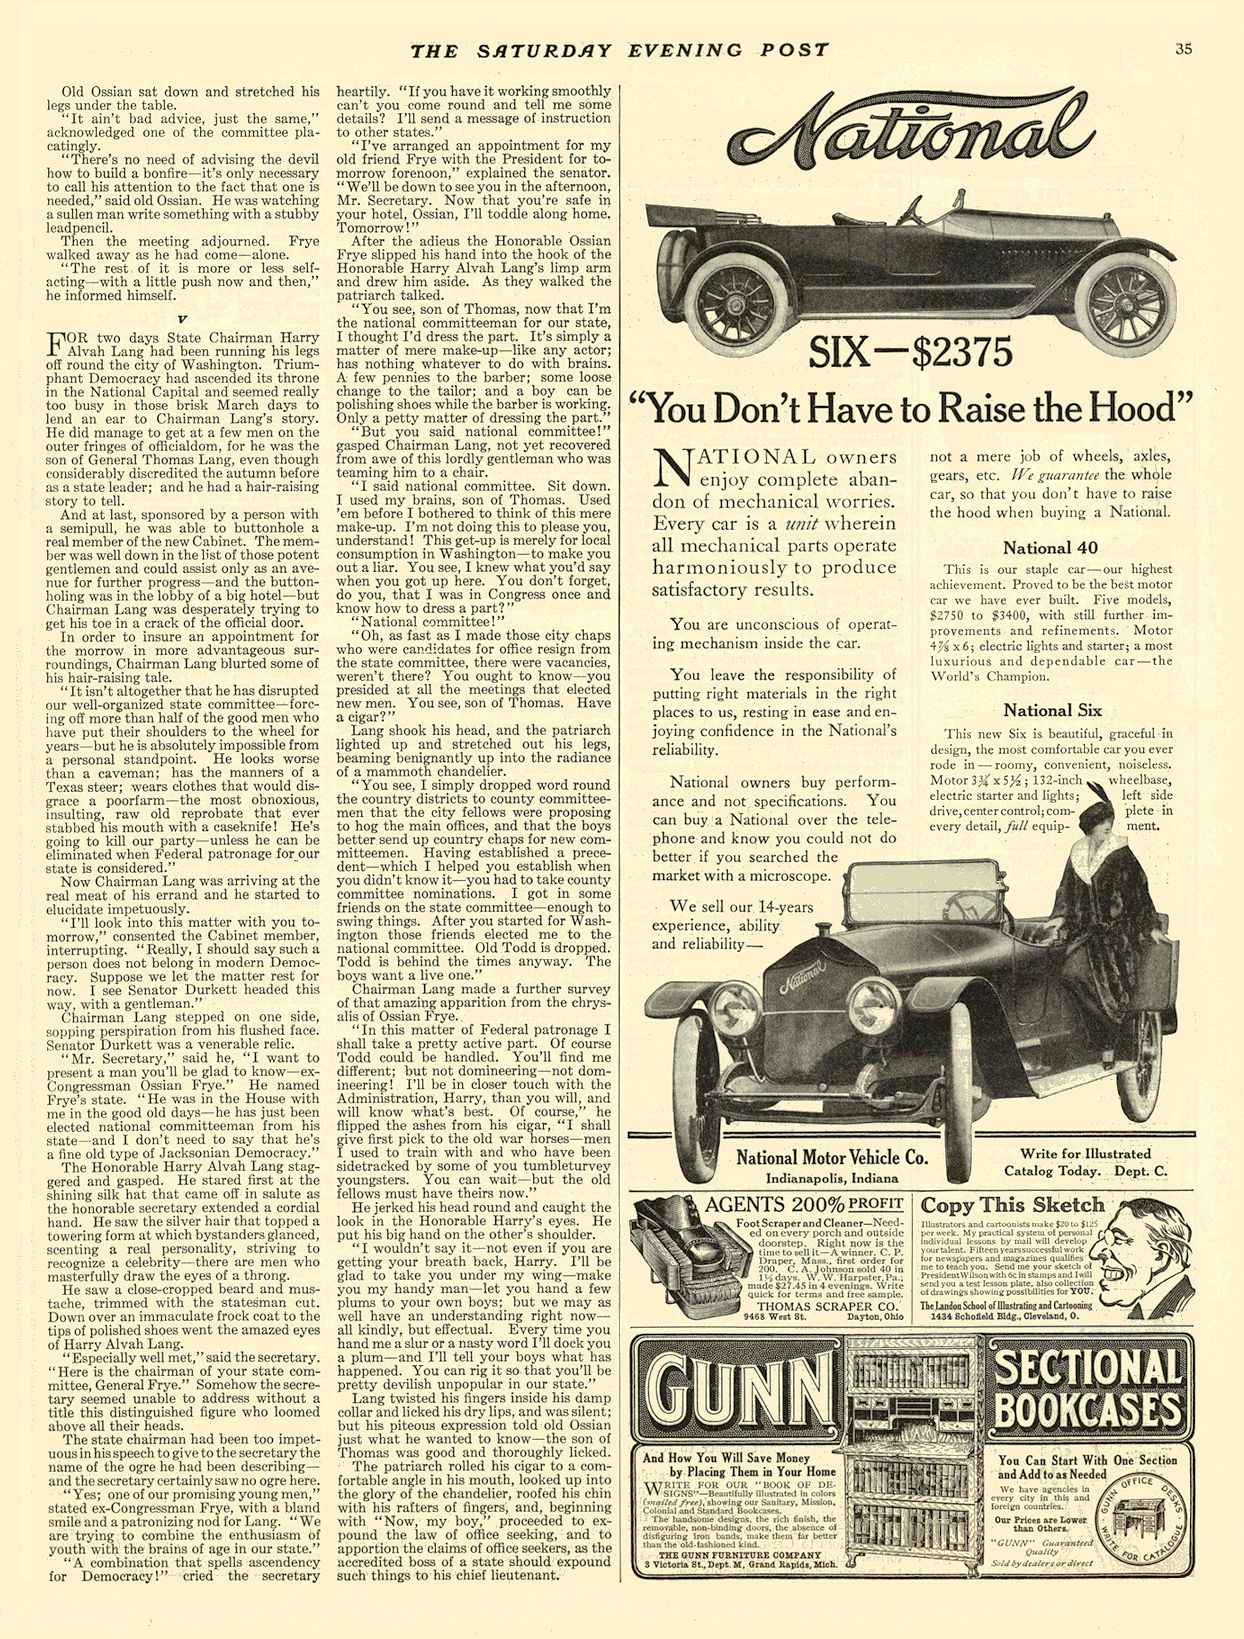 """1914 1 10 NATIONAL SIX — $2375 """"You don't have to raise the hood"""" National Motor Vehicle Co. Indianapolis, IND THE SATURDAY EVENING POST January 10, 1914 10.5″x13.75″ page 35"""